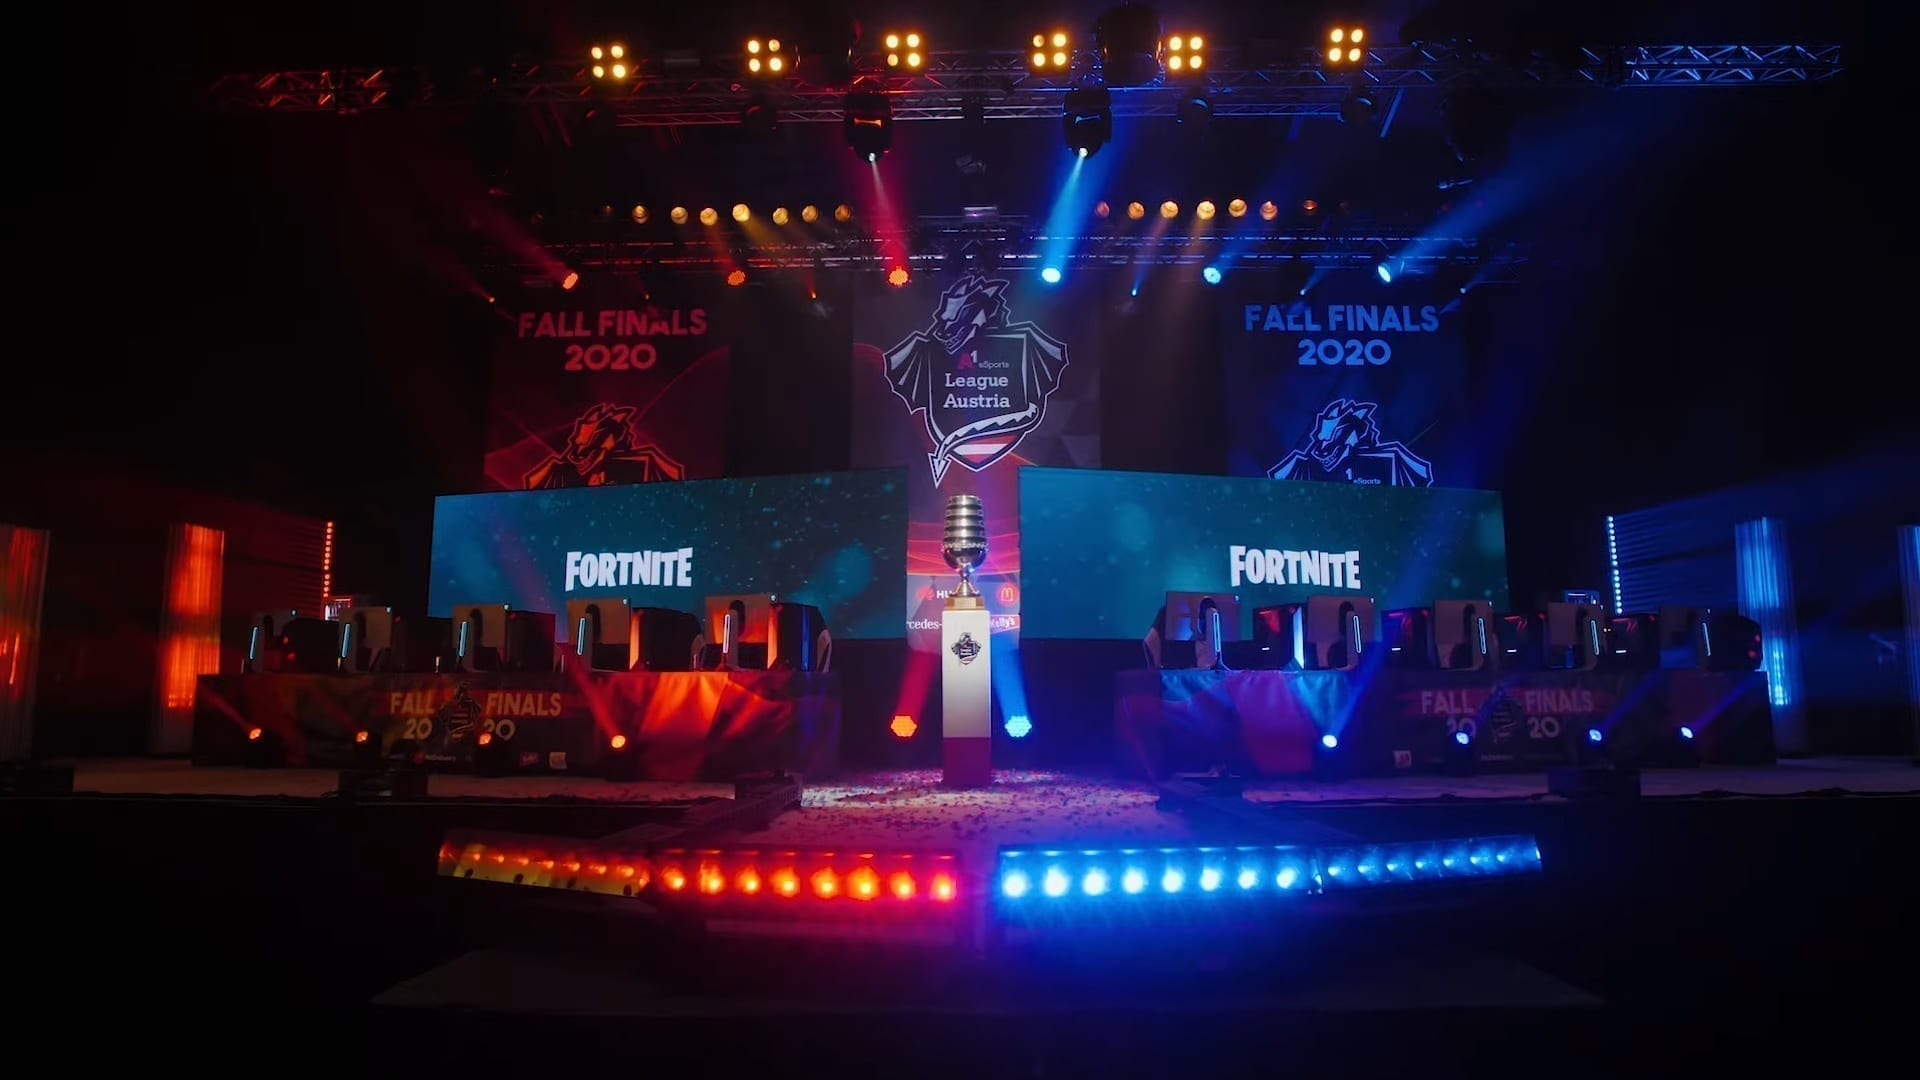 A1 eSports Fall Finals 2020 Stage